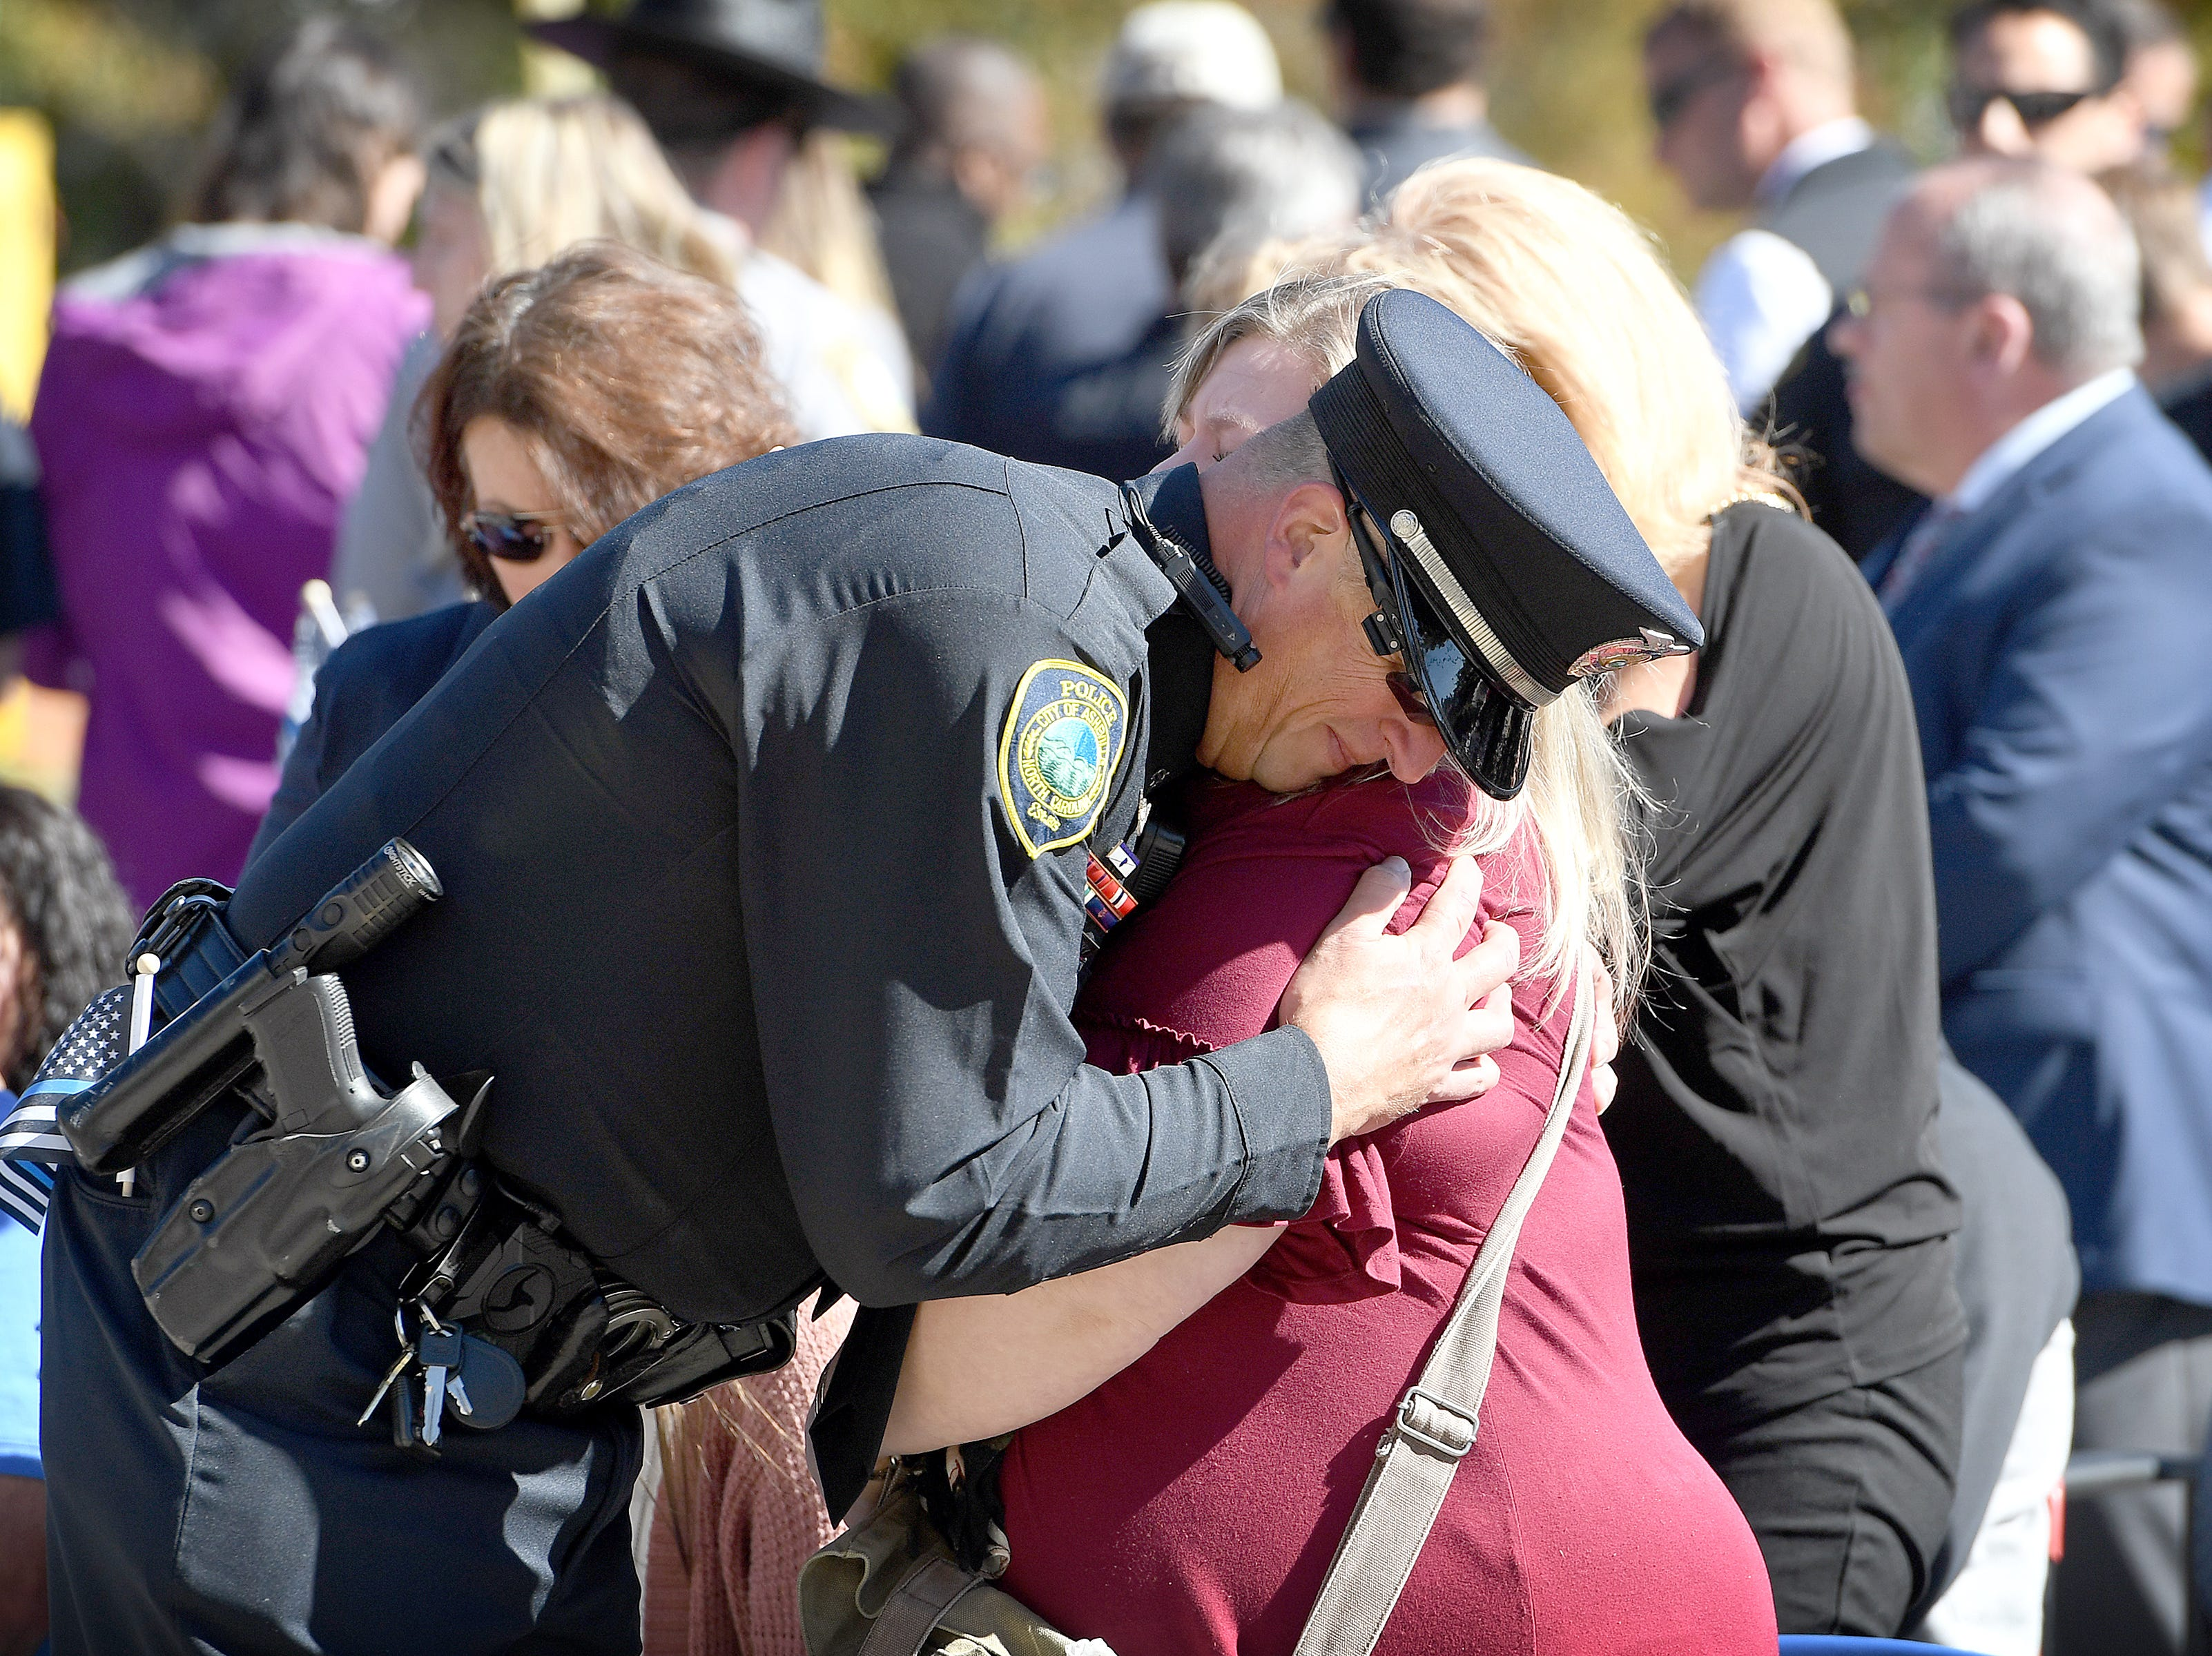 Senior police officer with the Asheville Police Department Scott Fry hugs police officer Robert Bingaman's widow, Genevieve, during a ceremony to dedicate a portion of Old Haywood Road to Bingaman at the Traffic Safety Office on the five-year-anniversary of his death on Oct. 29, 2018.